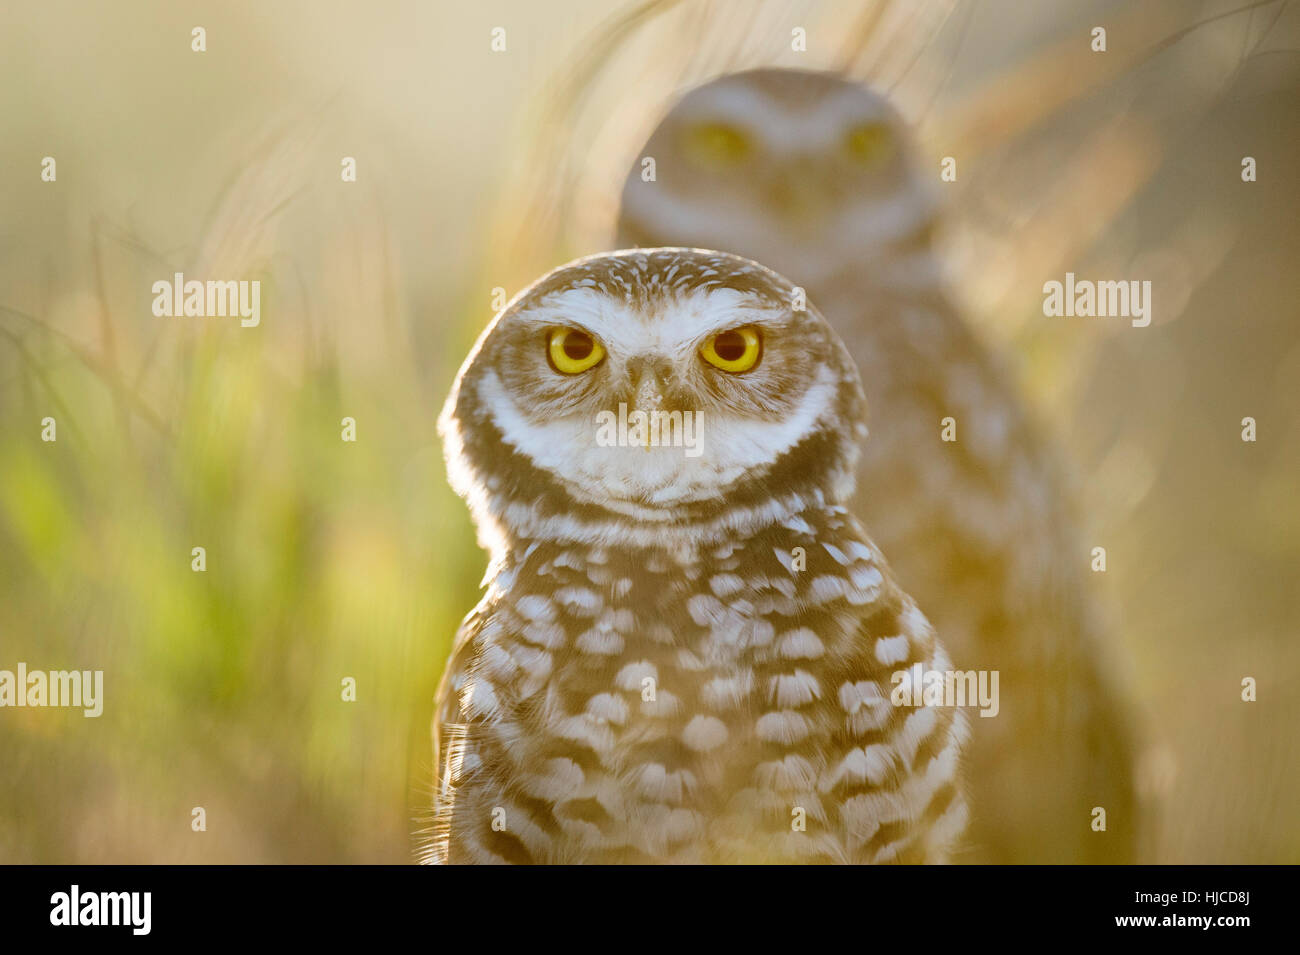 One Florida Burrowing Owl stands in front of another as the bright sun shines from behind the pair. The bird's - Stock Image